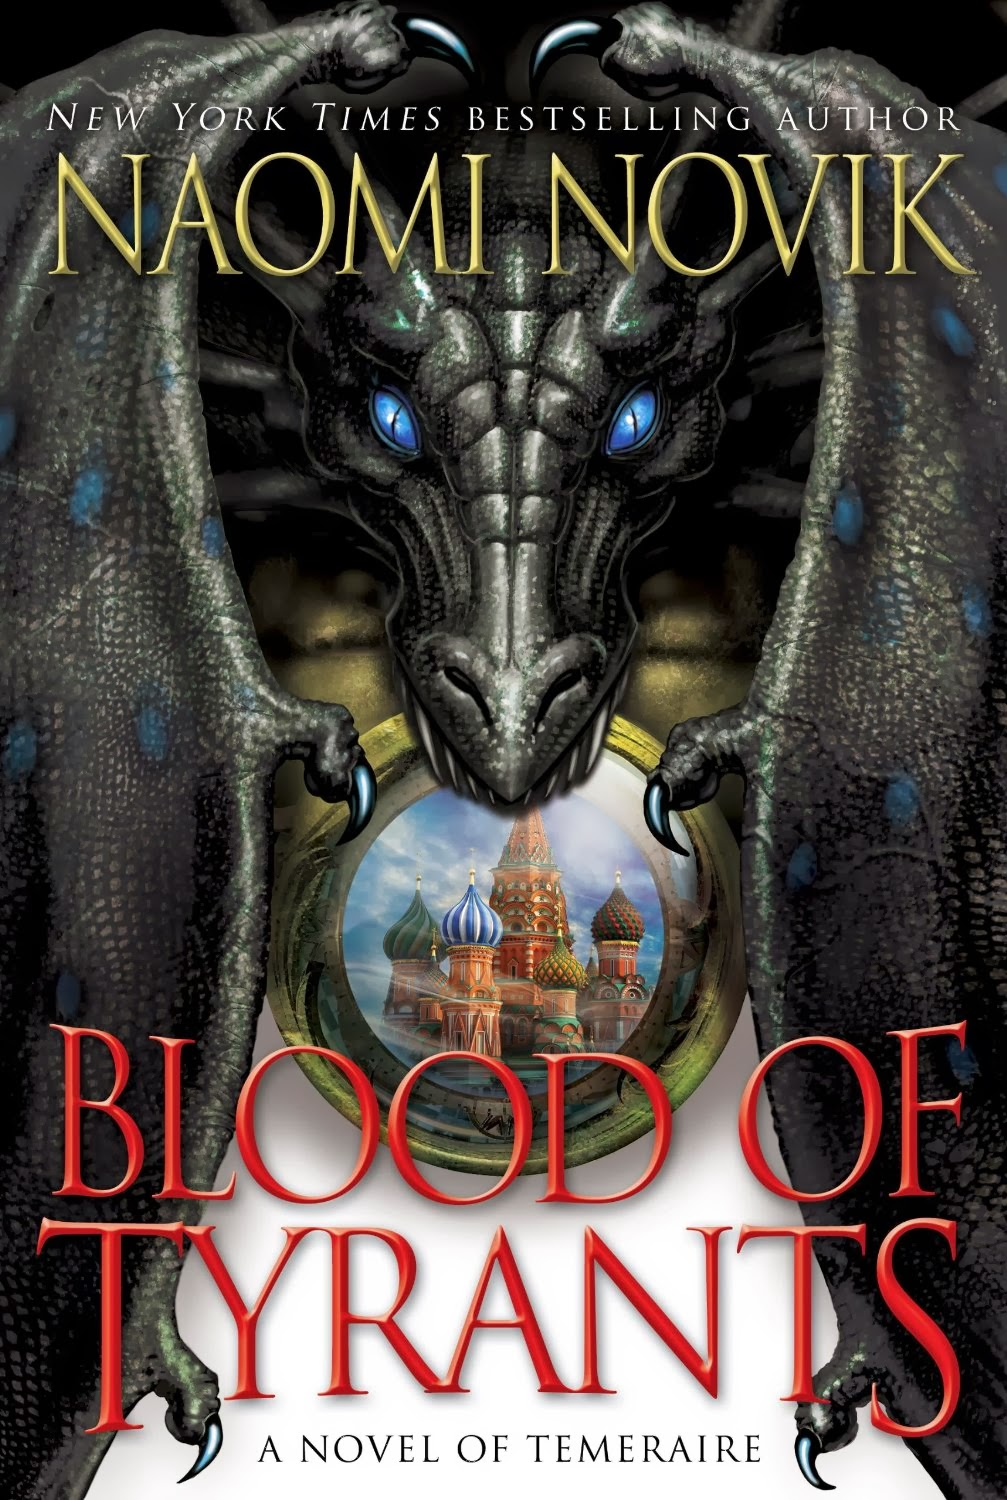 Blood of Tyrants by Naomi Novik